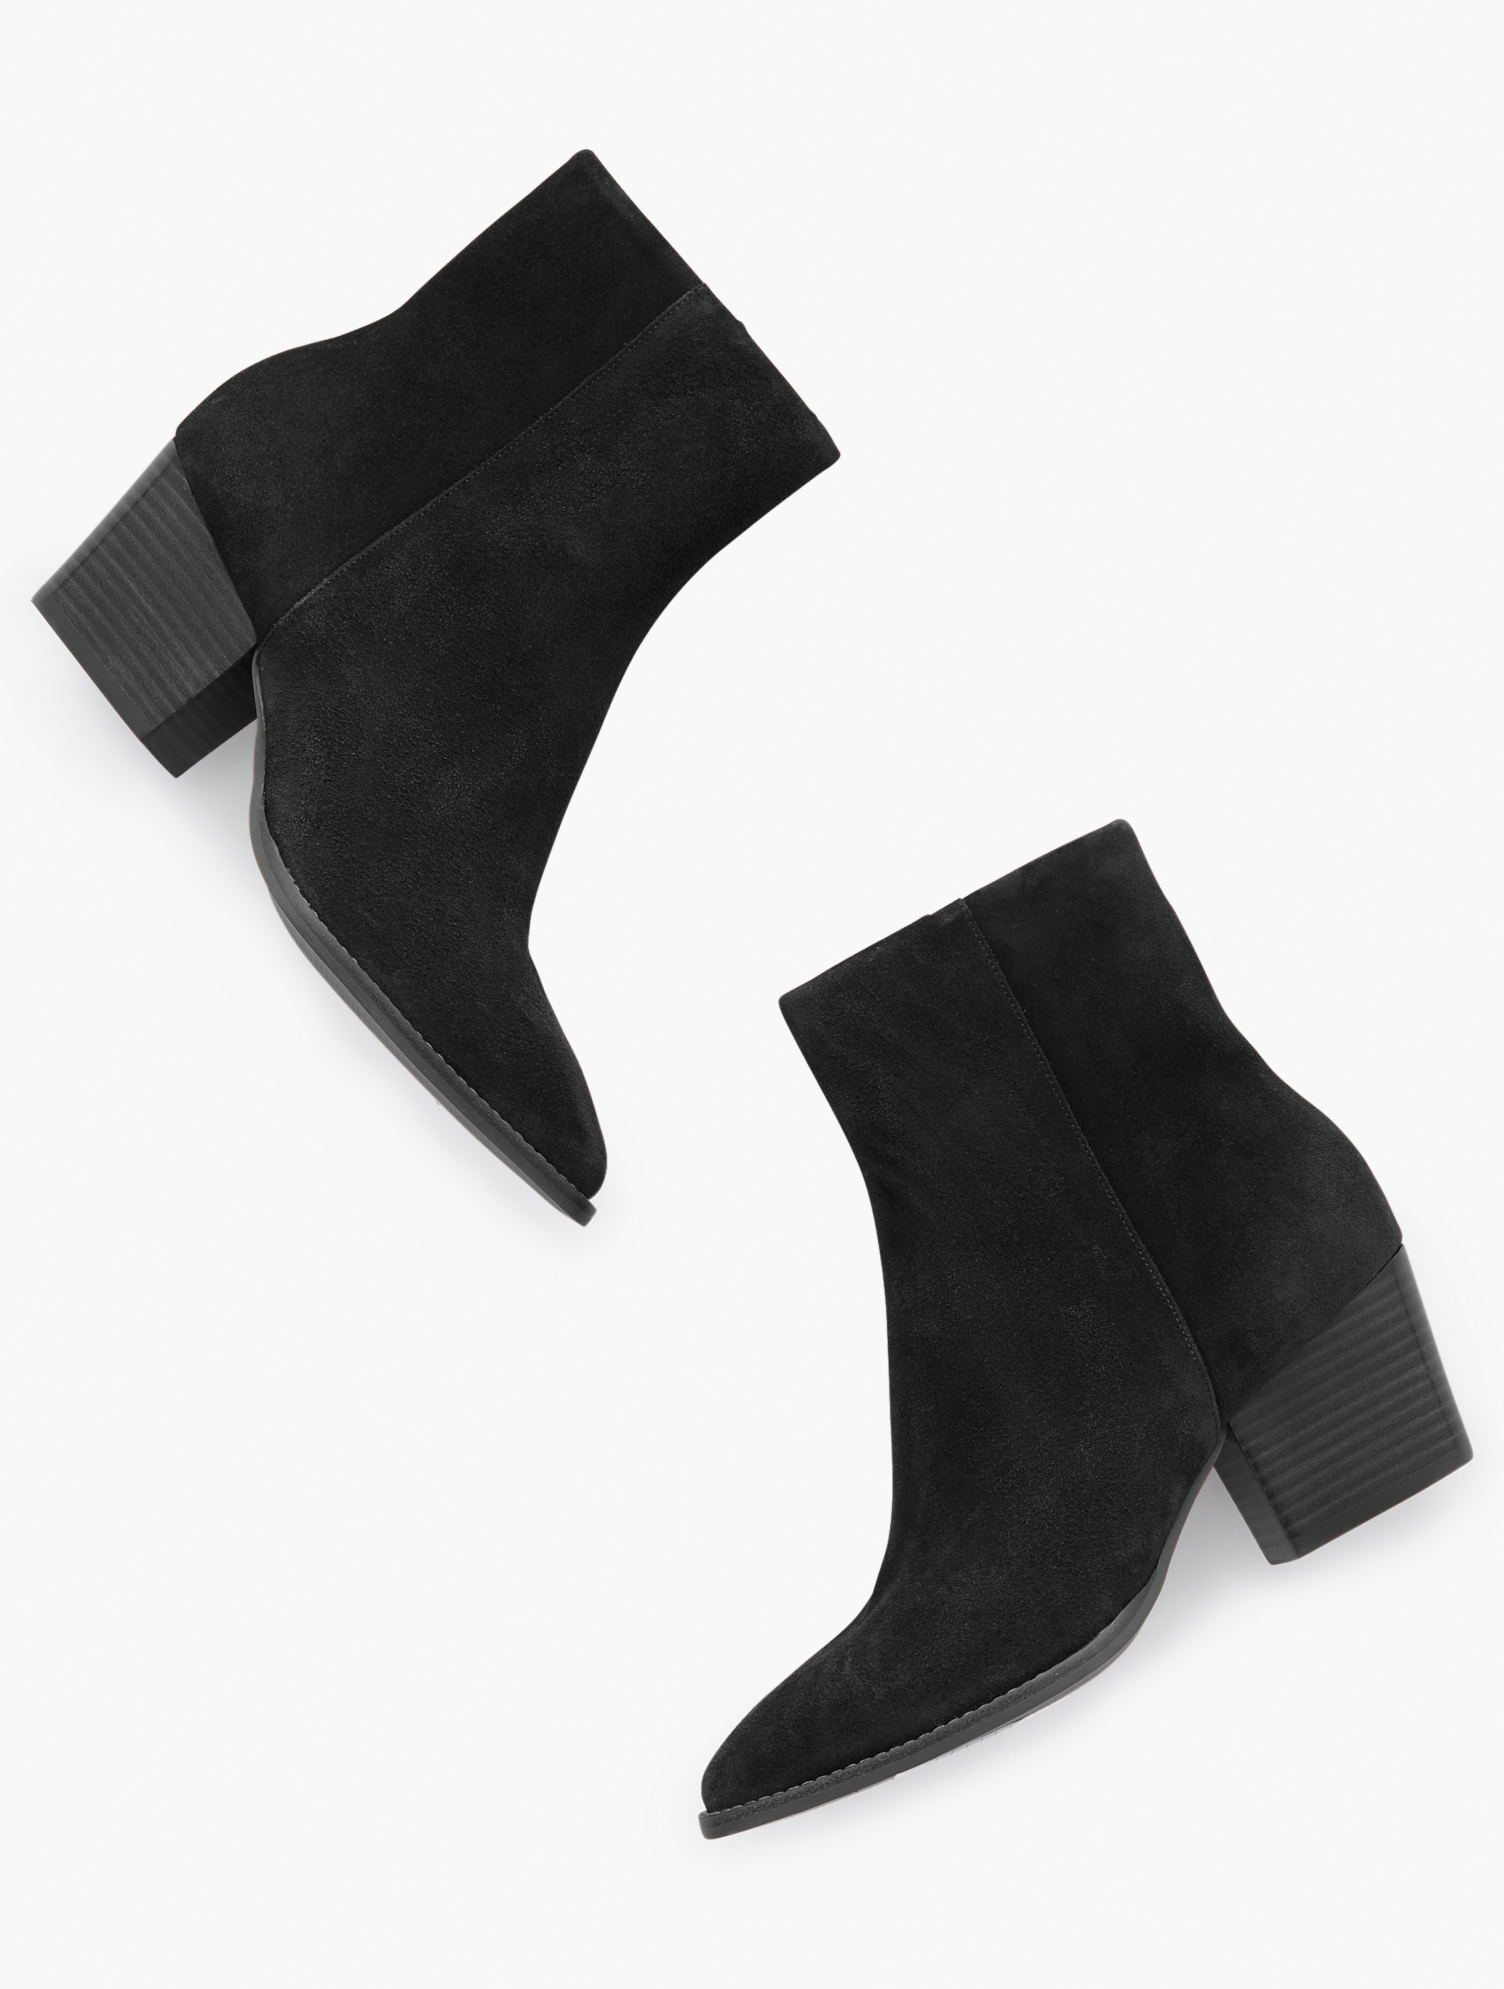 Our Jayla Ankle Boots. Classic and versatile, in sumptuous suede. Features Gift Box/Gift Wrap is not available for this item 3MM Memory foam footbed 2 1/4 inches heel Western Boot Almond Toe Closure: Side Zipper Imported Material: 100% Leather Jayla Suede Ankle Boots - Black - 11M Talbots